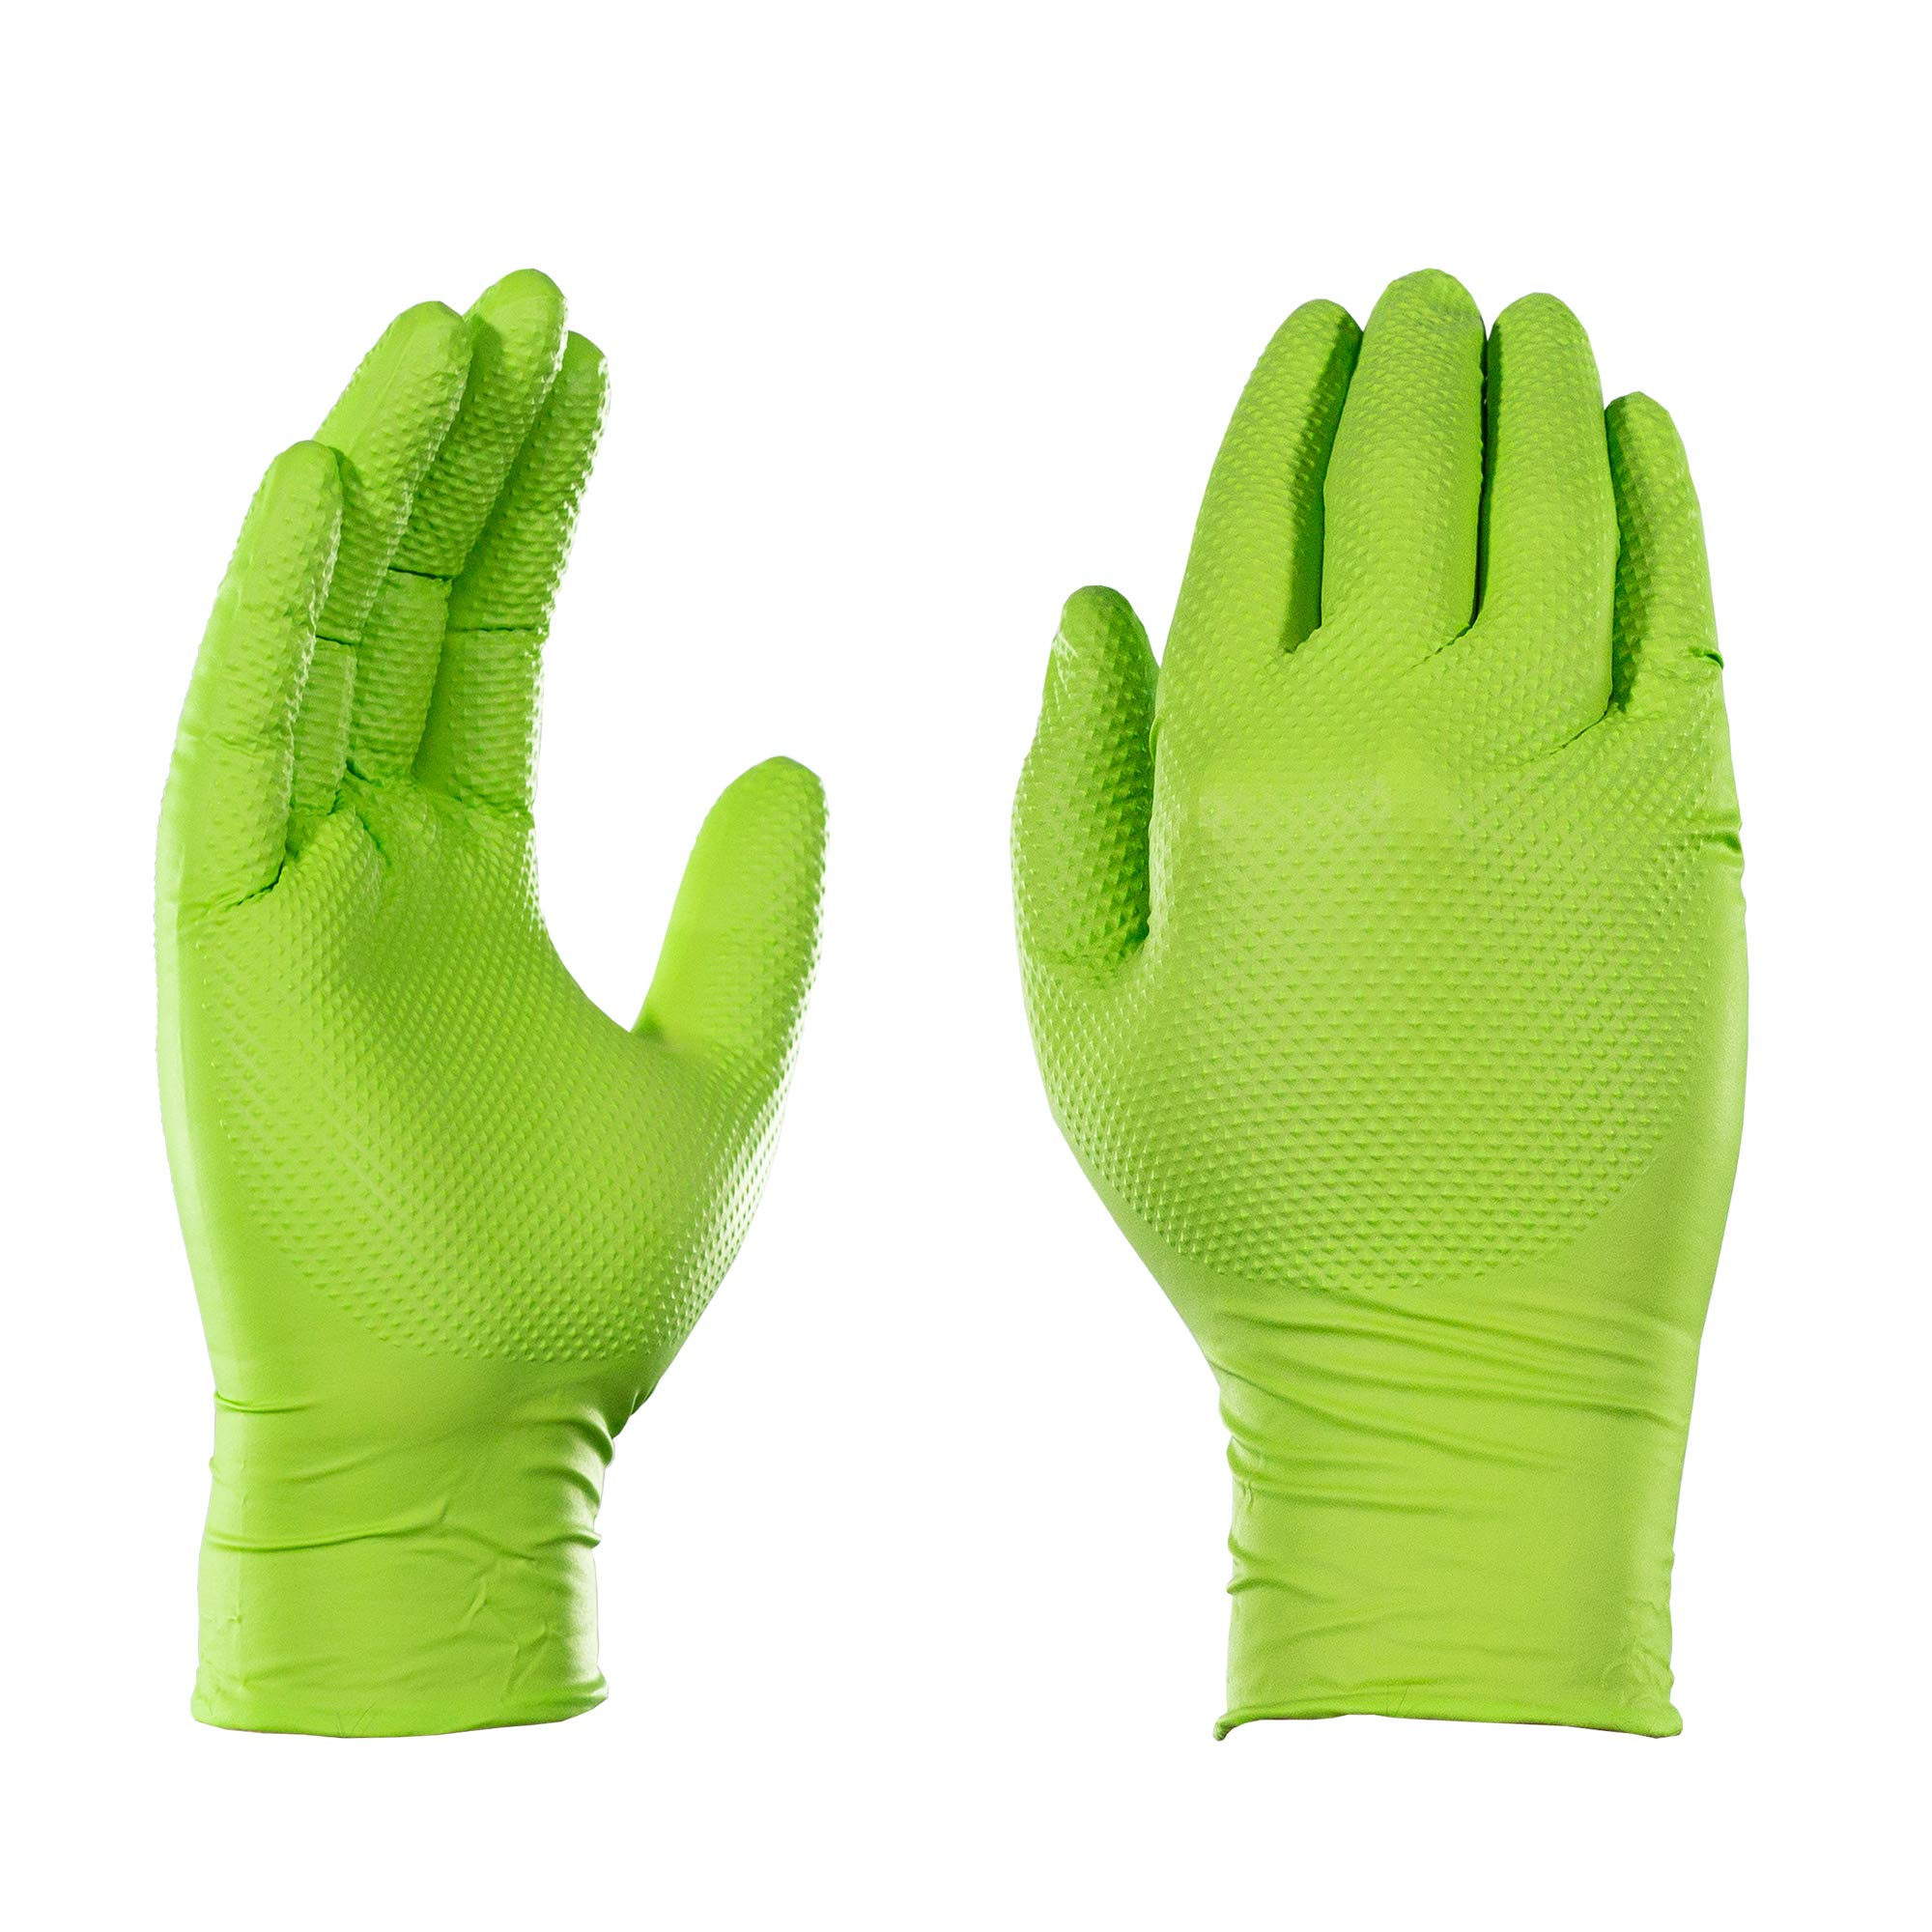 AMMEX - GWGN44100 - Nitrile Gloves - Gloveworks - HD, Disposable, Powder Free, 8 mil, Medium, Green (Case of 1000)